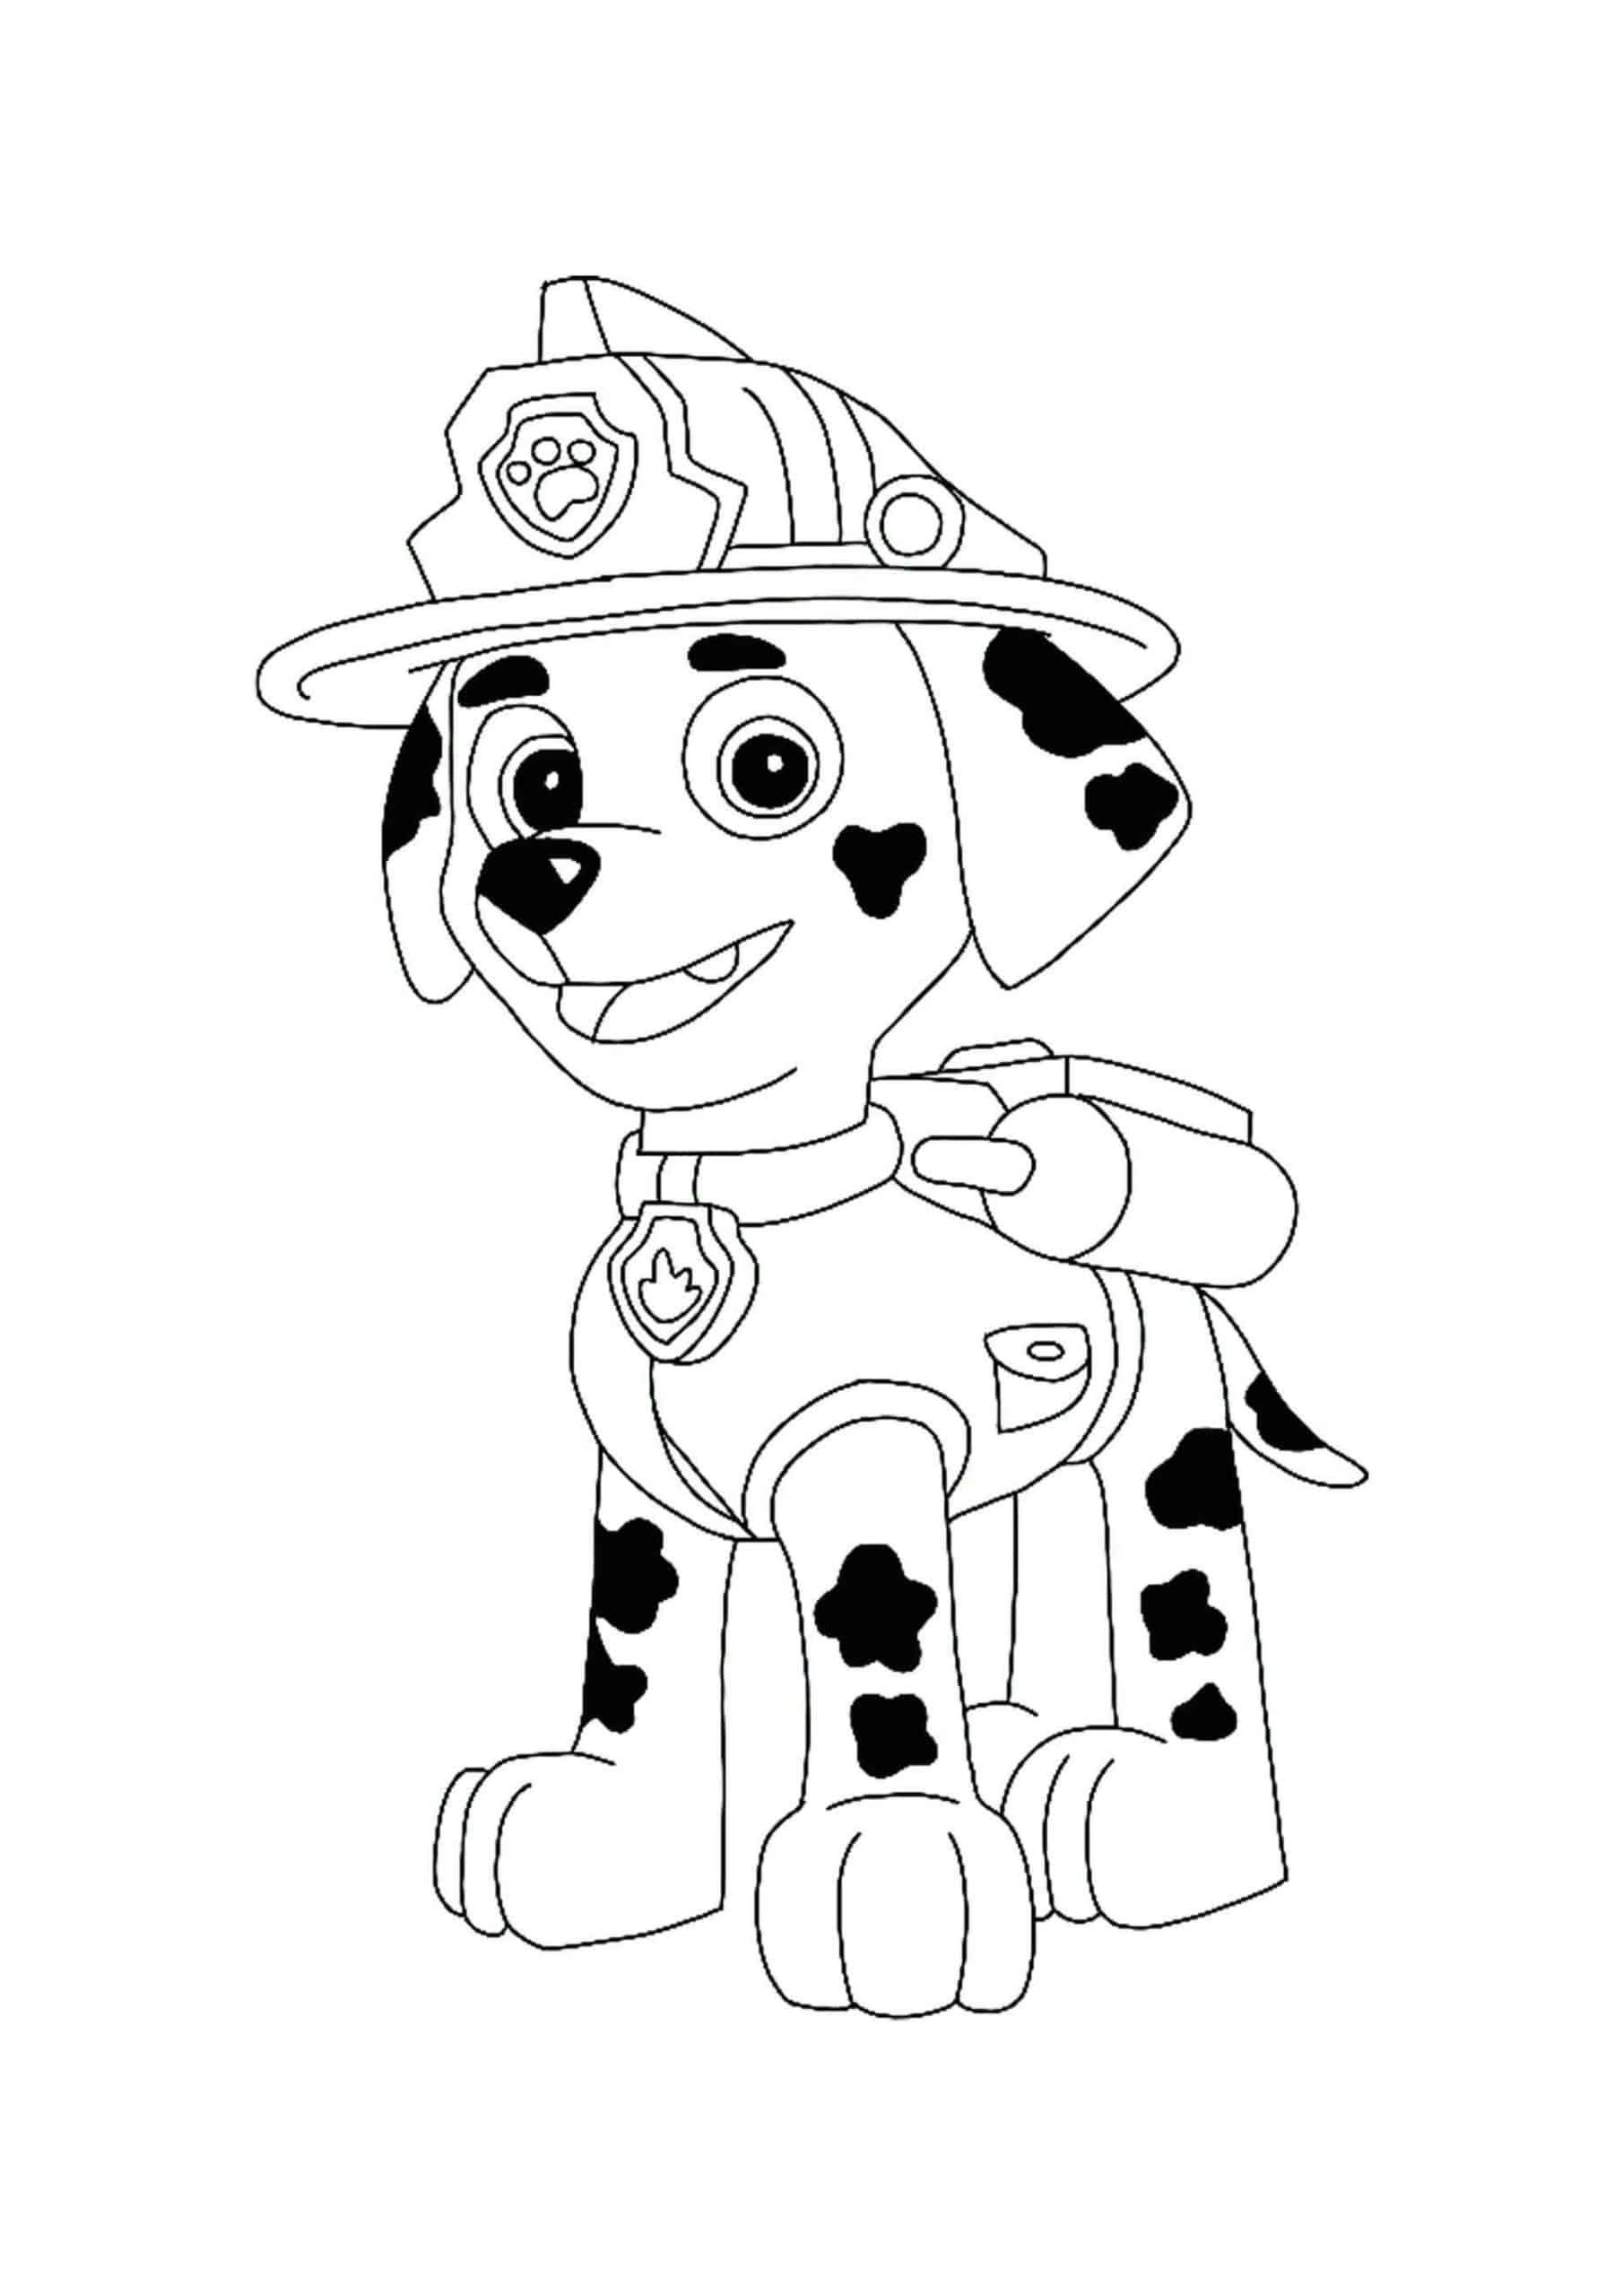 Paw Patrol Marshall Coloring Pages Paw Patrol Coloring Pages Paw Patrol Coloring Marshall Paw Patrol